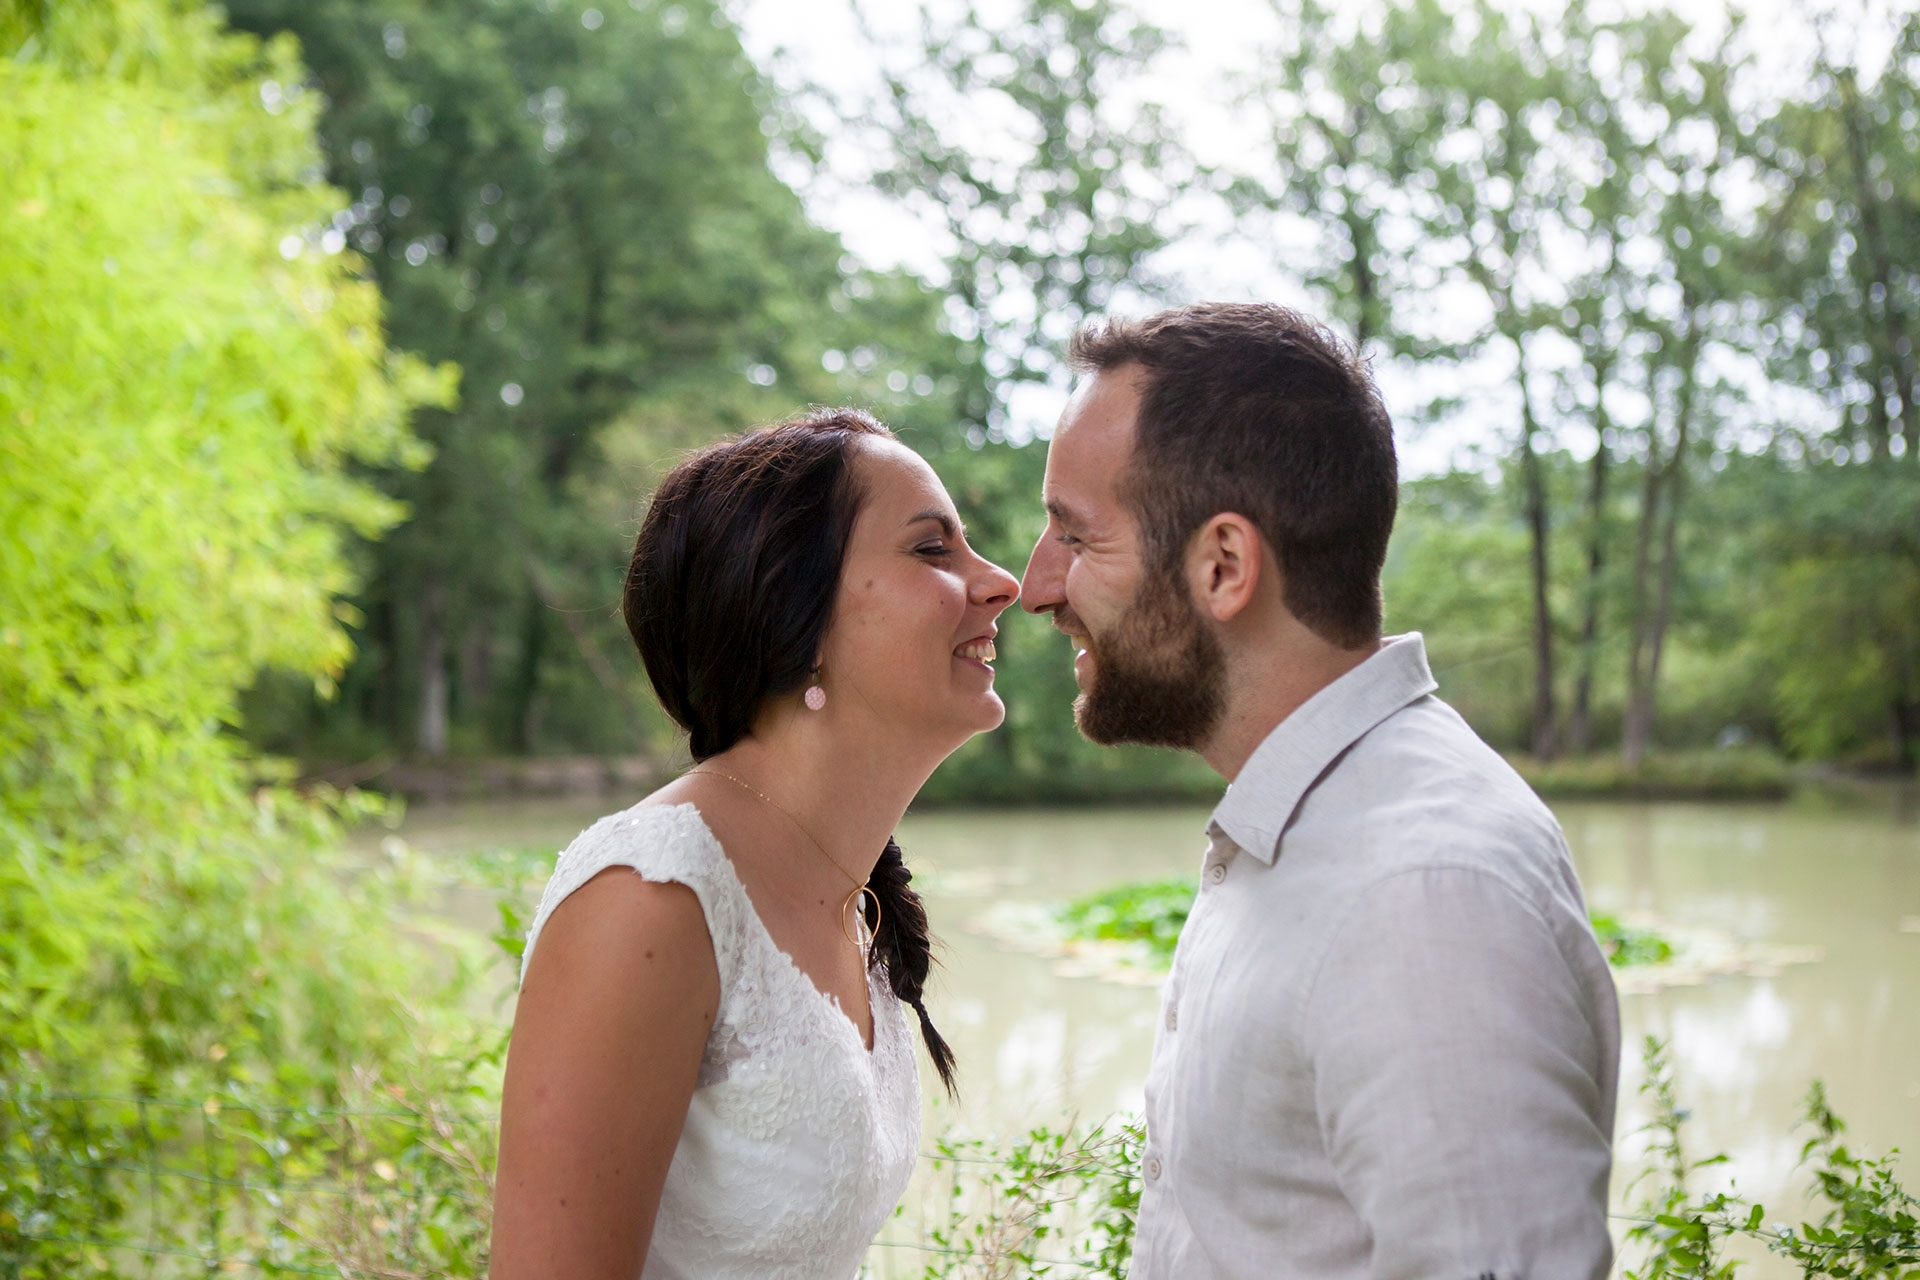 particuliers-evenements-mariage-oui-carla&jeremy-20